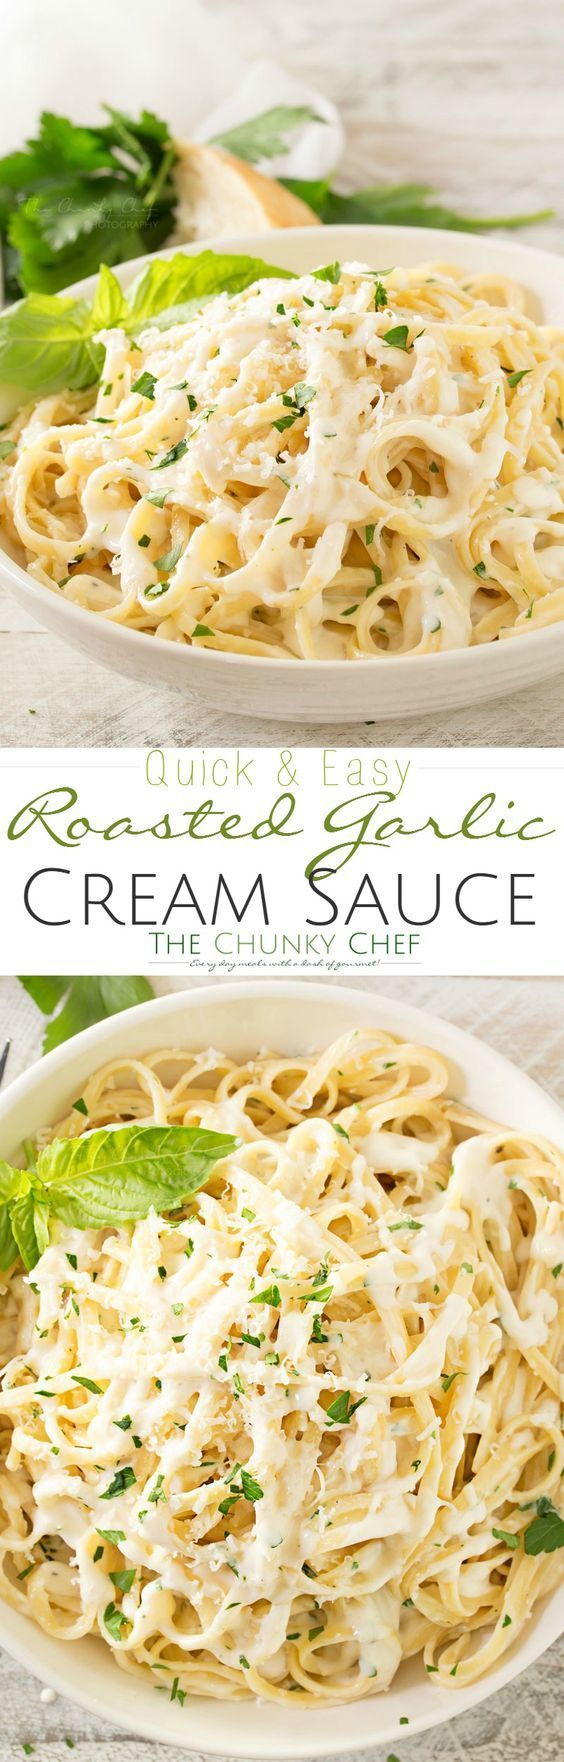 Roasted-Garlic-Cream-Sauce Just a few ingredients make up this luxuriously creamy roasted garlic cream sauce... perfect for dipping or swirled with your favorite pasta!